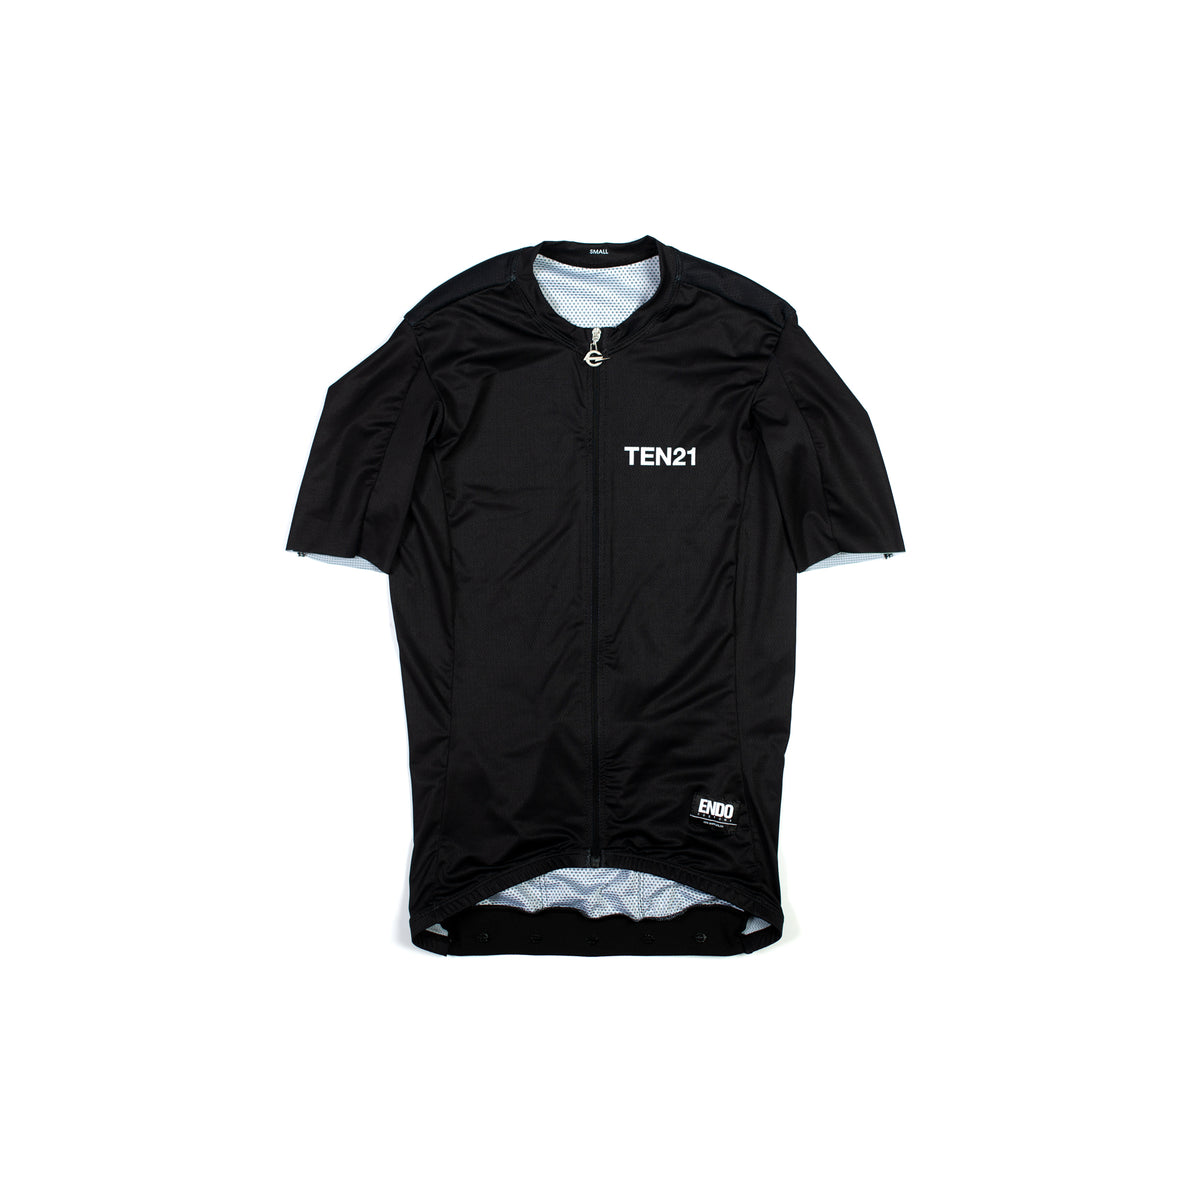 TEN21 - LADERA 2.0 JERSEY - BLACK